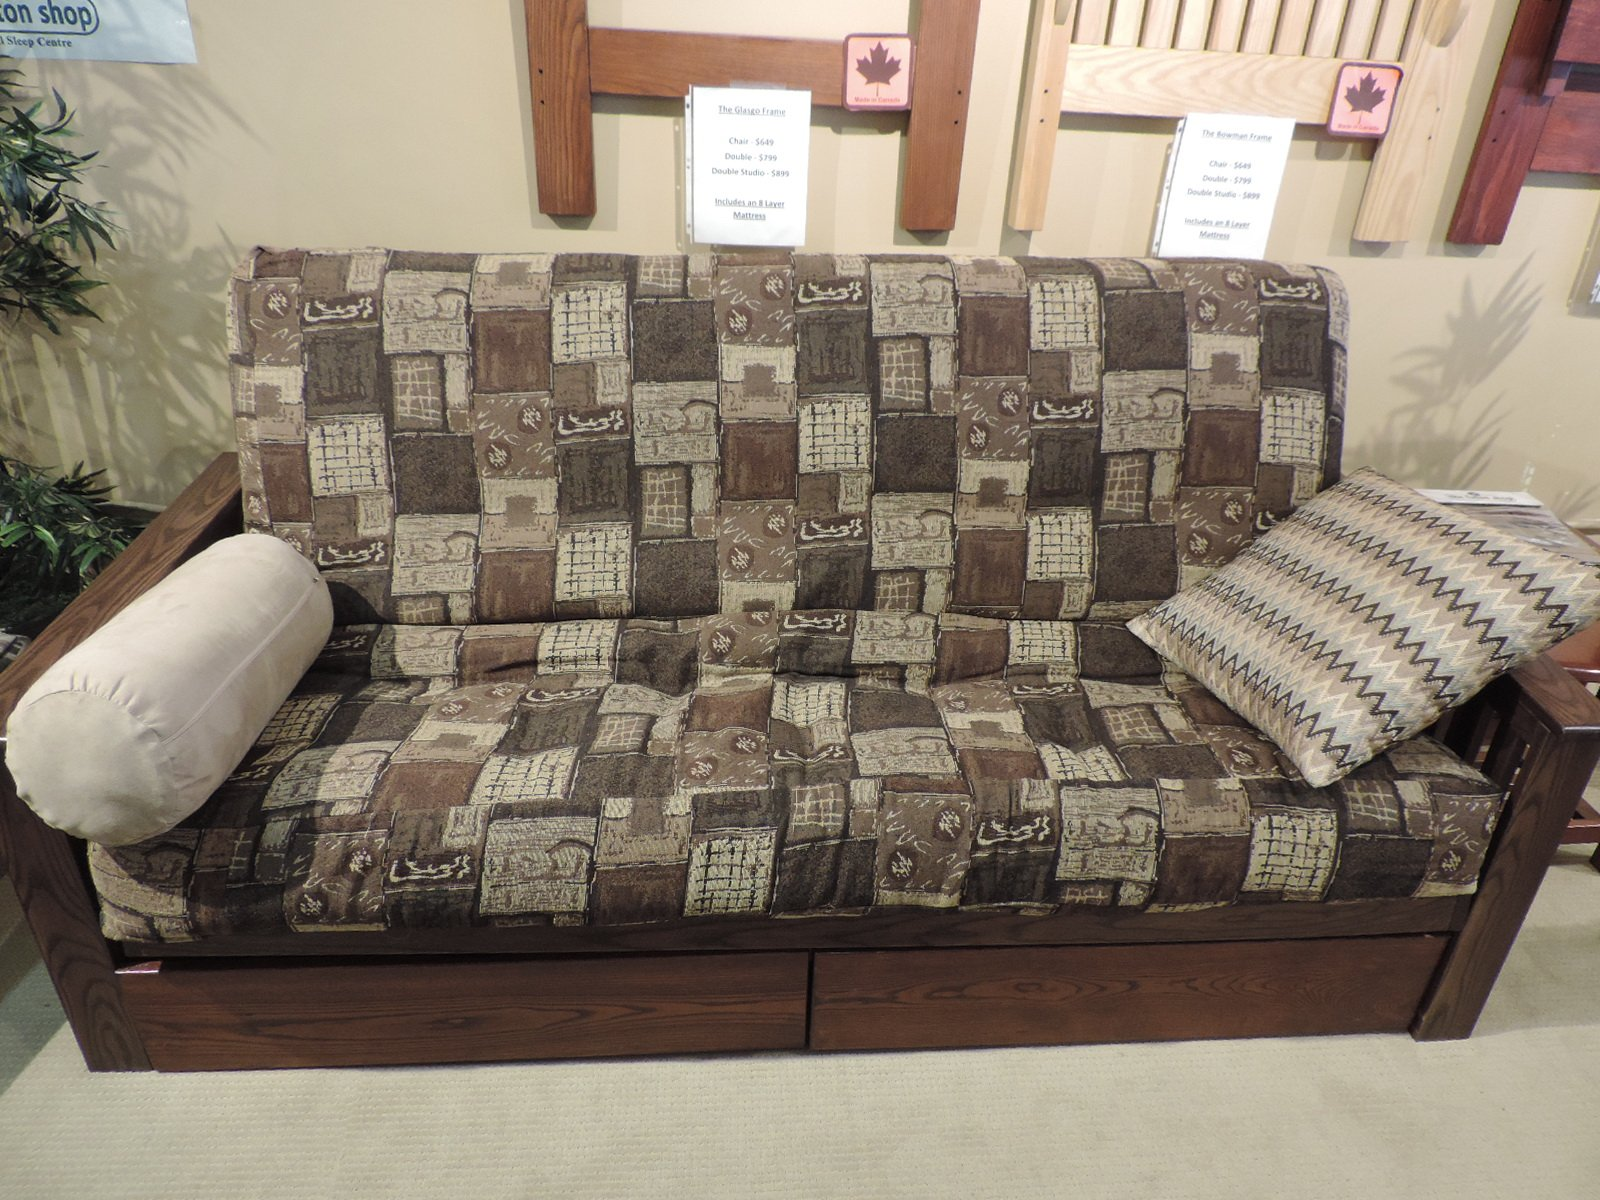 refilling sofa cushions websites cushion stuffing foam restuffing couch